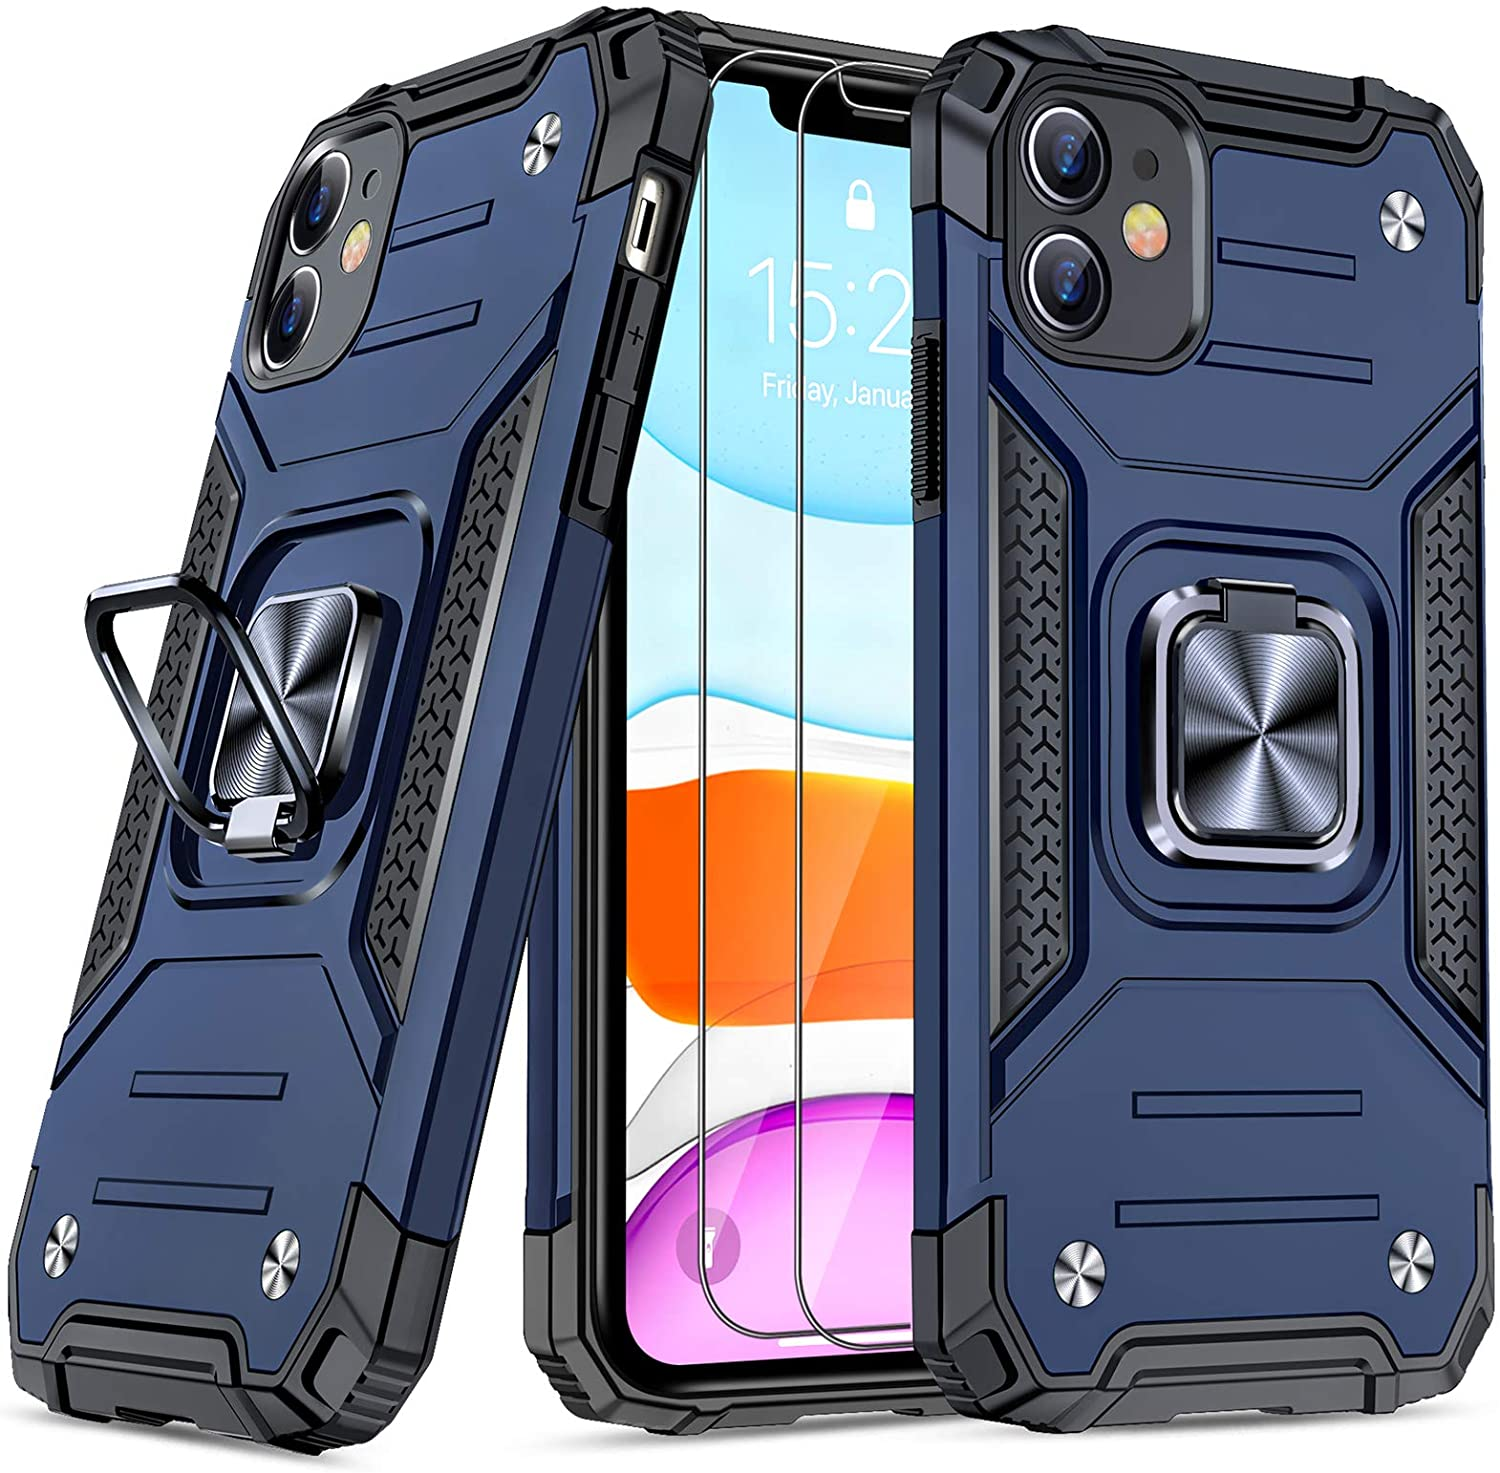 JAME Designed for iPhone 11 Case with Screen Protector 2PCS, Military-Grade Drop Protection, Protective Phone Cases, with Ring Kickstand Shockproof Bumper Case for iPhone 11 6.1 Inch Blue